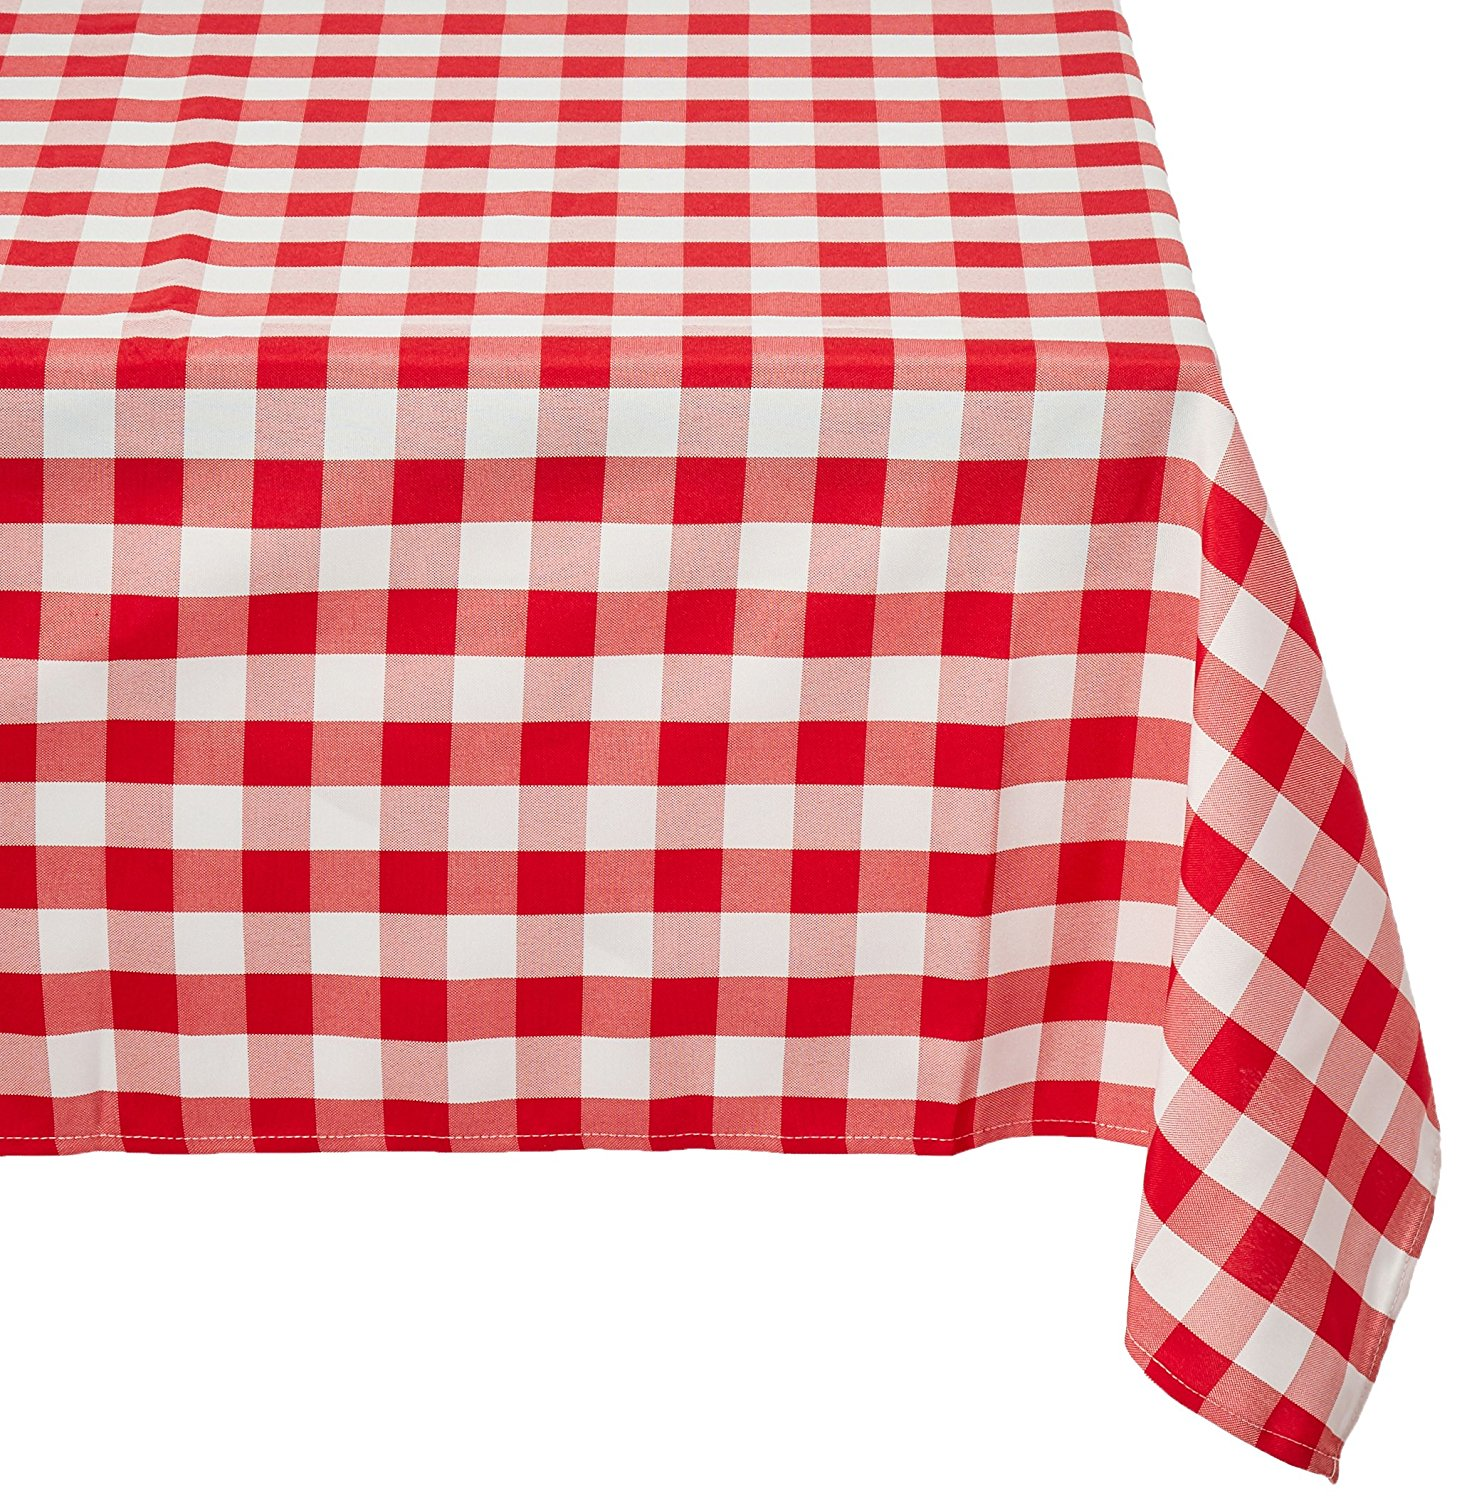 red and white checkered paper tablecloths Wholesale wedding table linens, tablecloths, table covers, chair covers, table runners, table overlays, chair sashes, napkins over 56 colors, many fabrics & sizes.